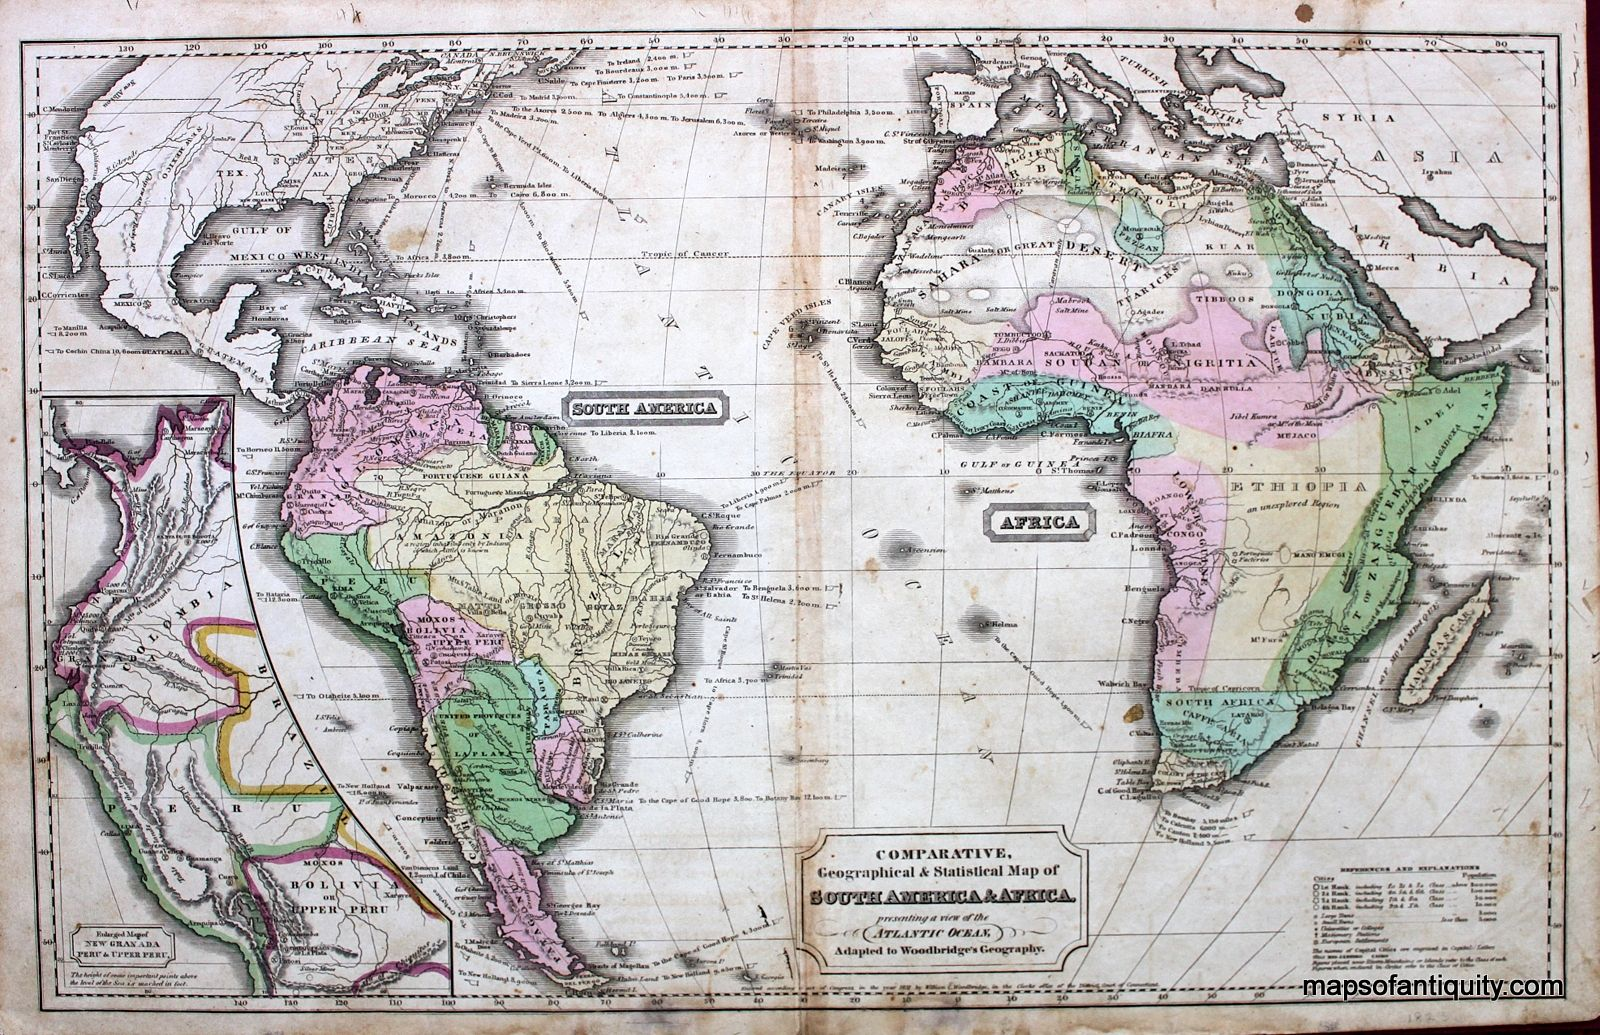 South America Map Chile%0A Comparative Geographical and Statistical Map of South America and Africa   presenting a view of the Atlantic Ocean       SOLD       Antique Maps and  Charts